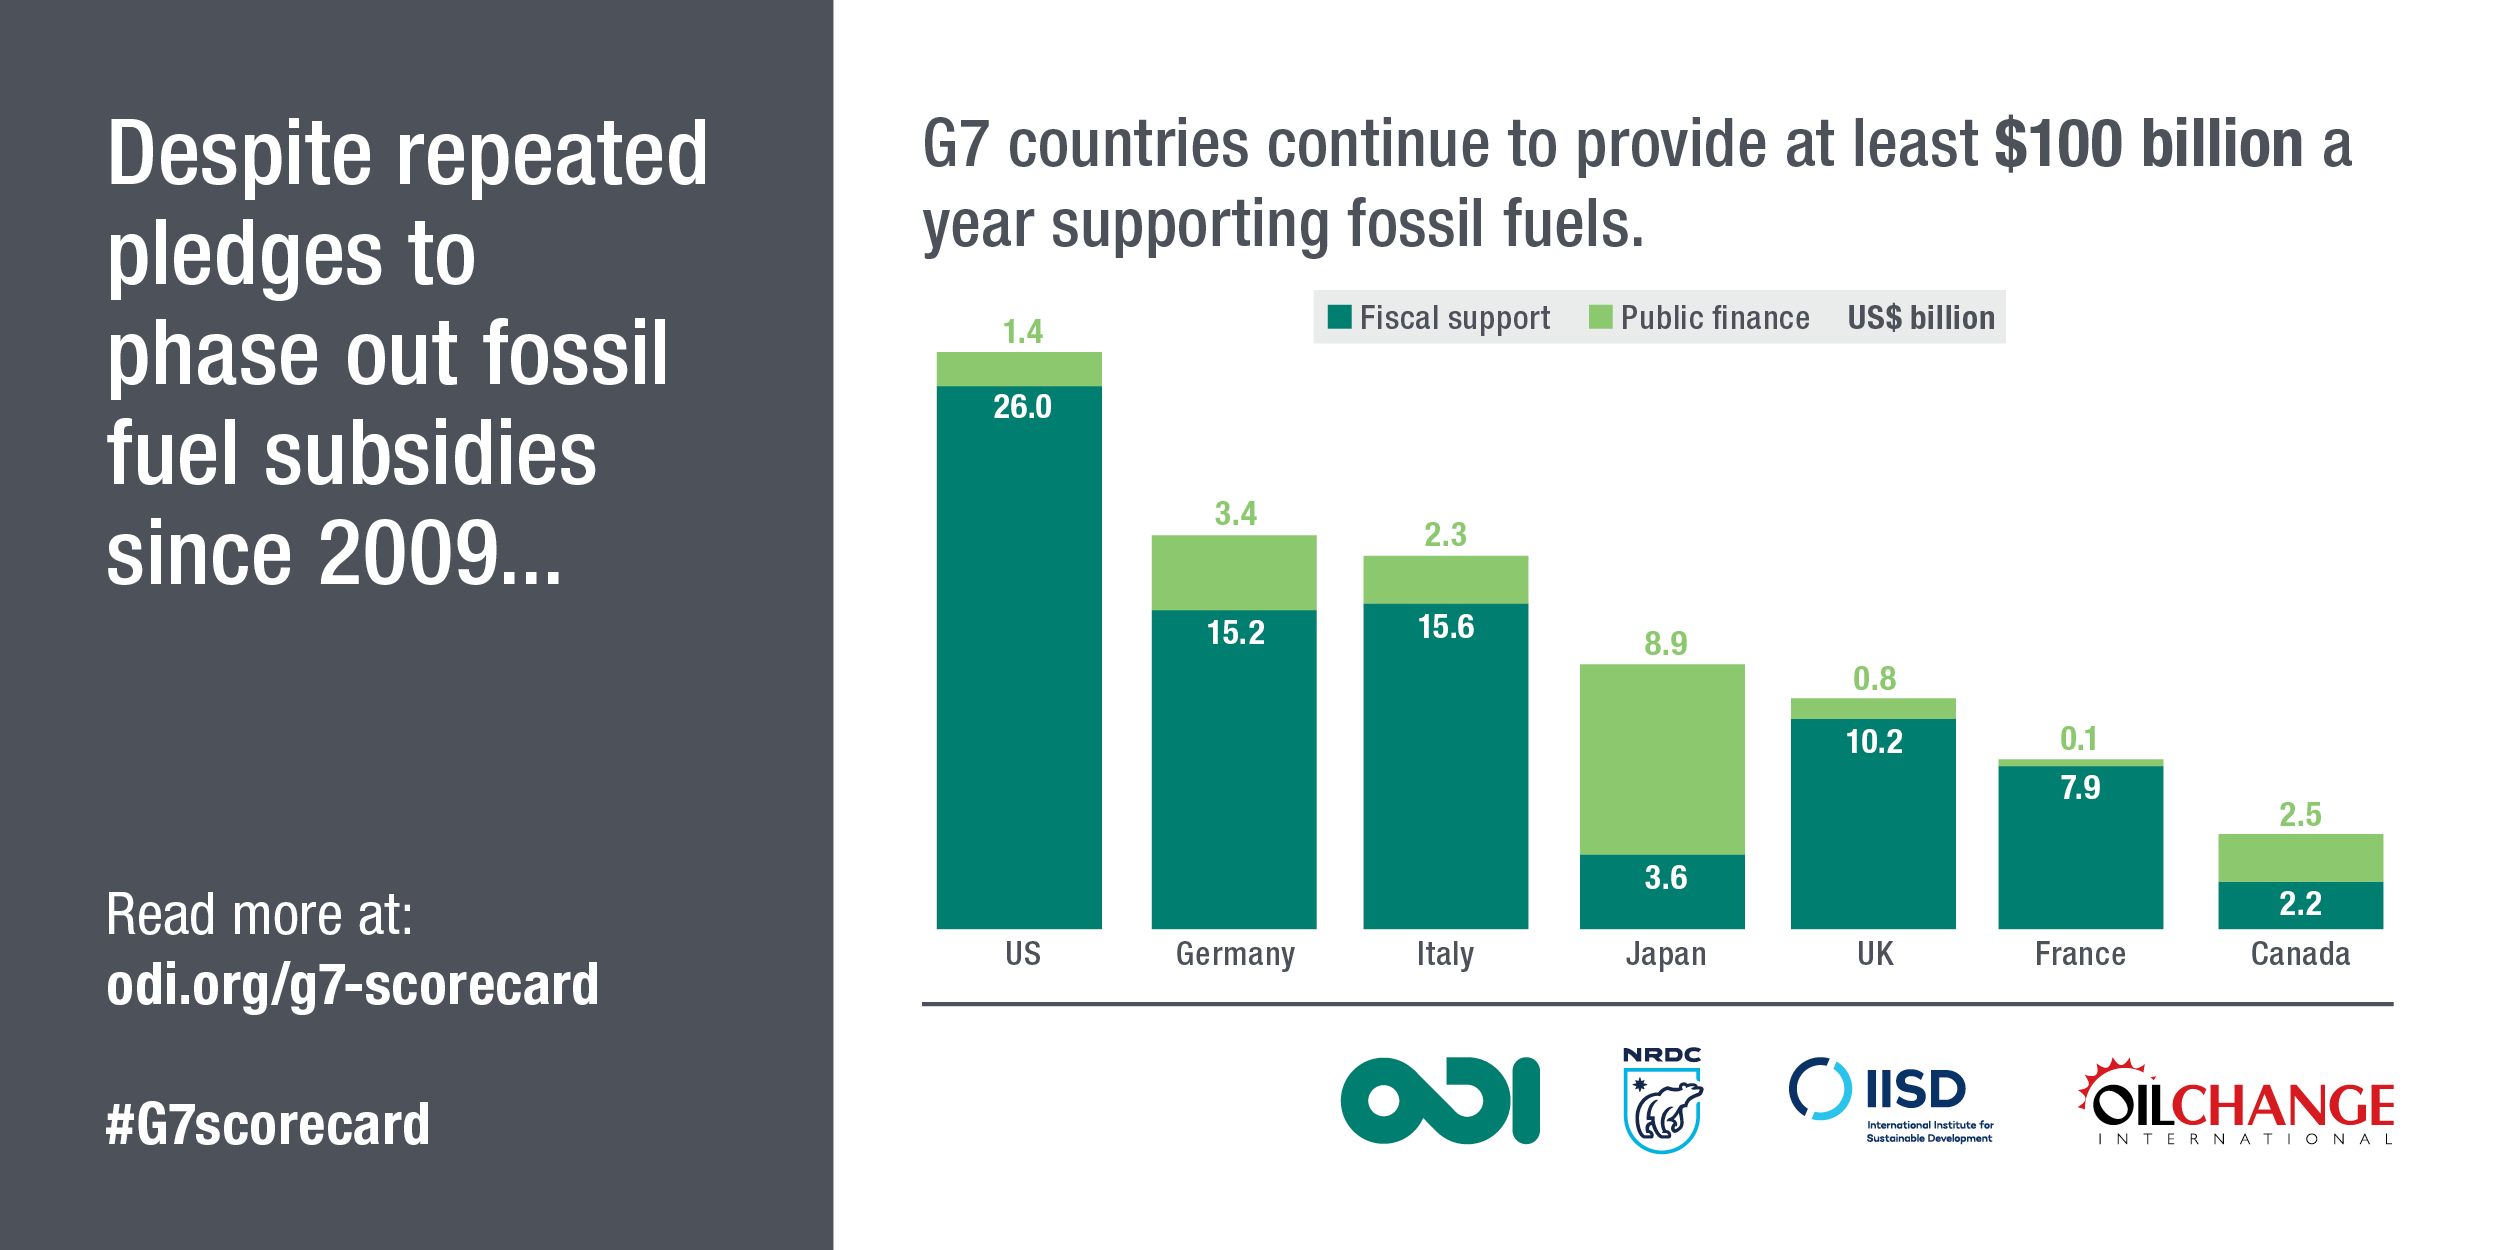 Infographic showing G7 support to fossil fuels up to $100 billion